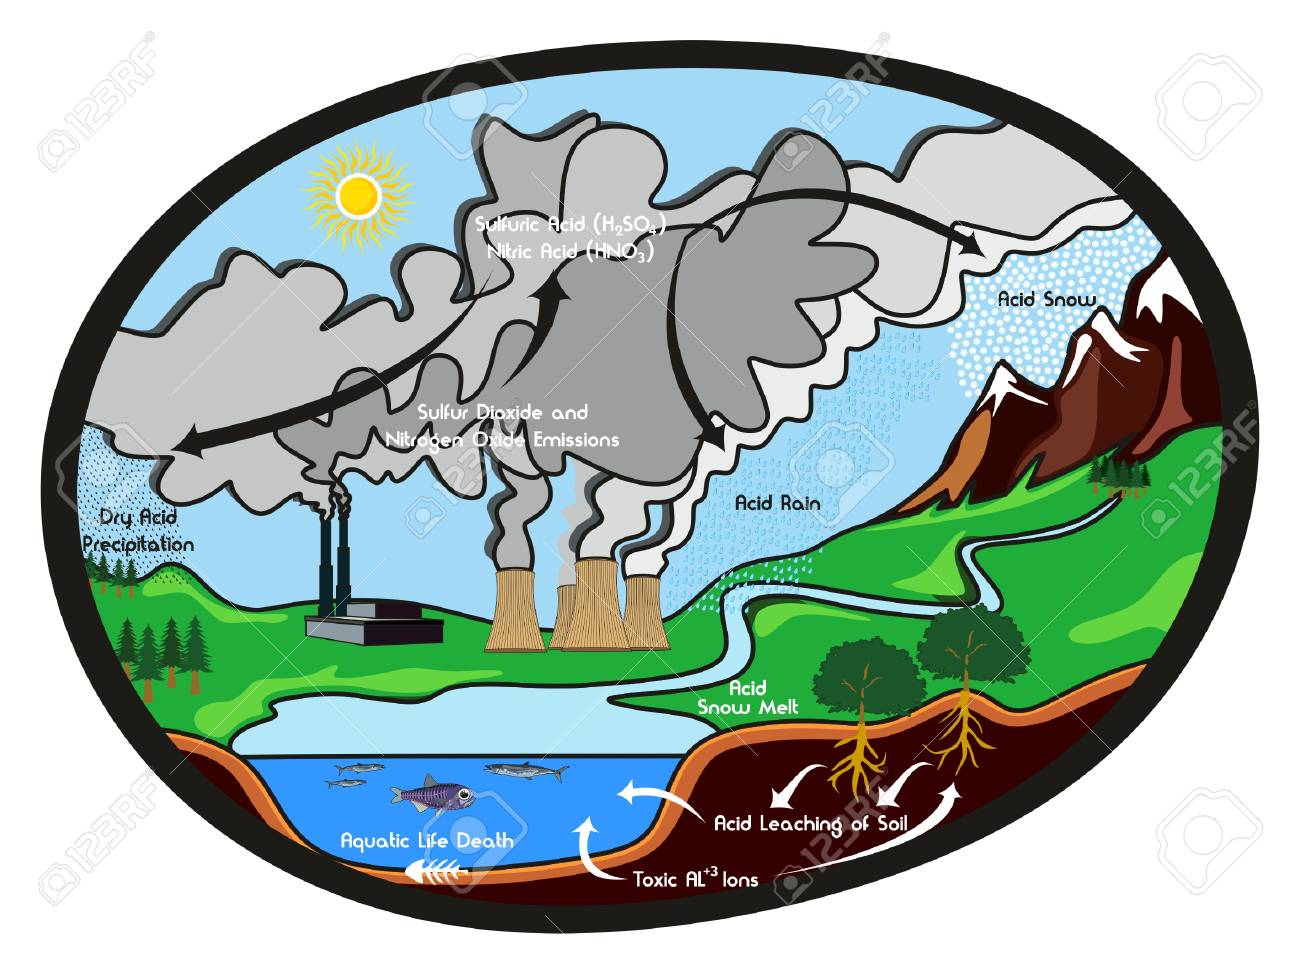 hight resolution of acid rain infographic diagram showing formation cycle of this harmful effect to our environment rain with